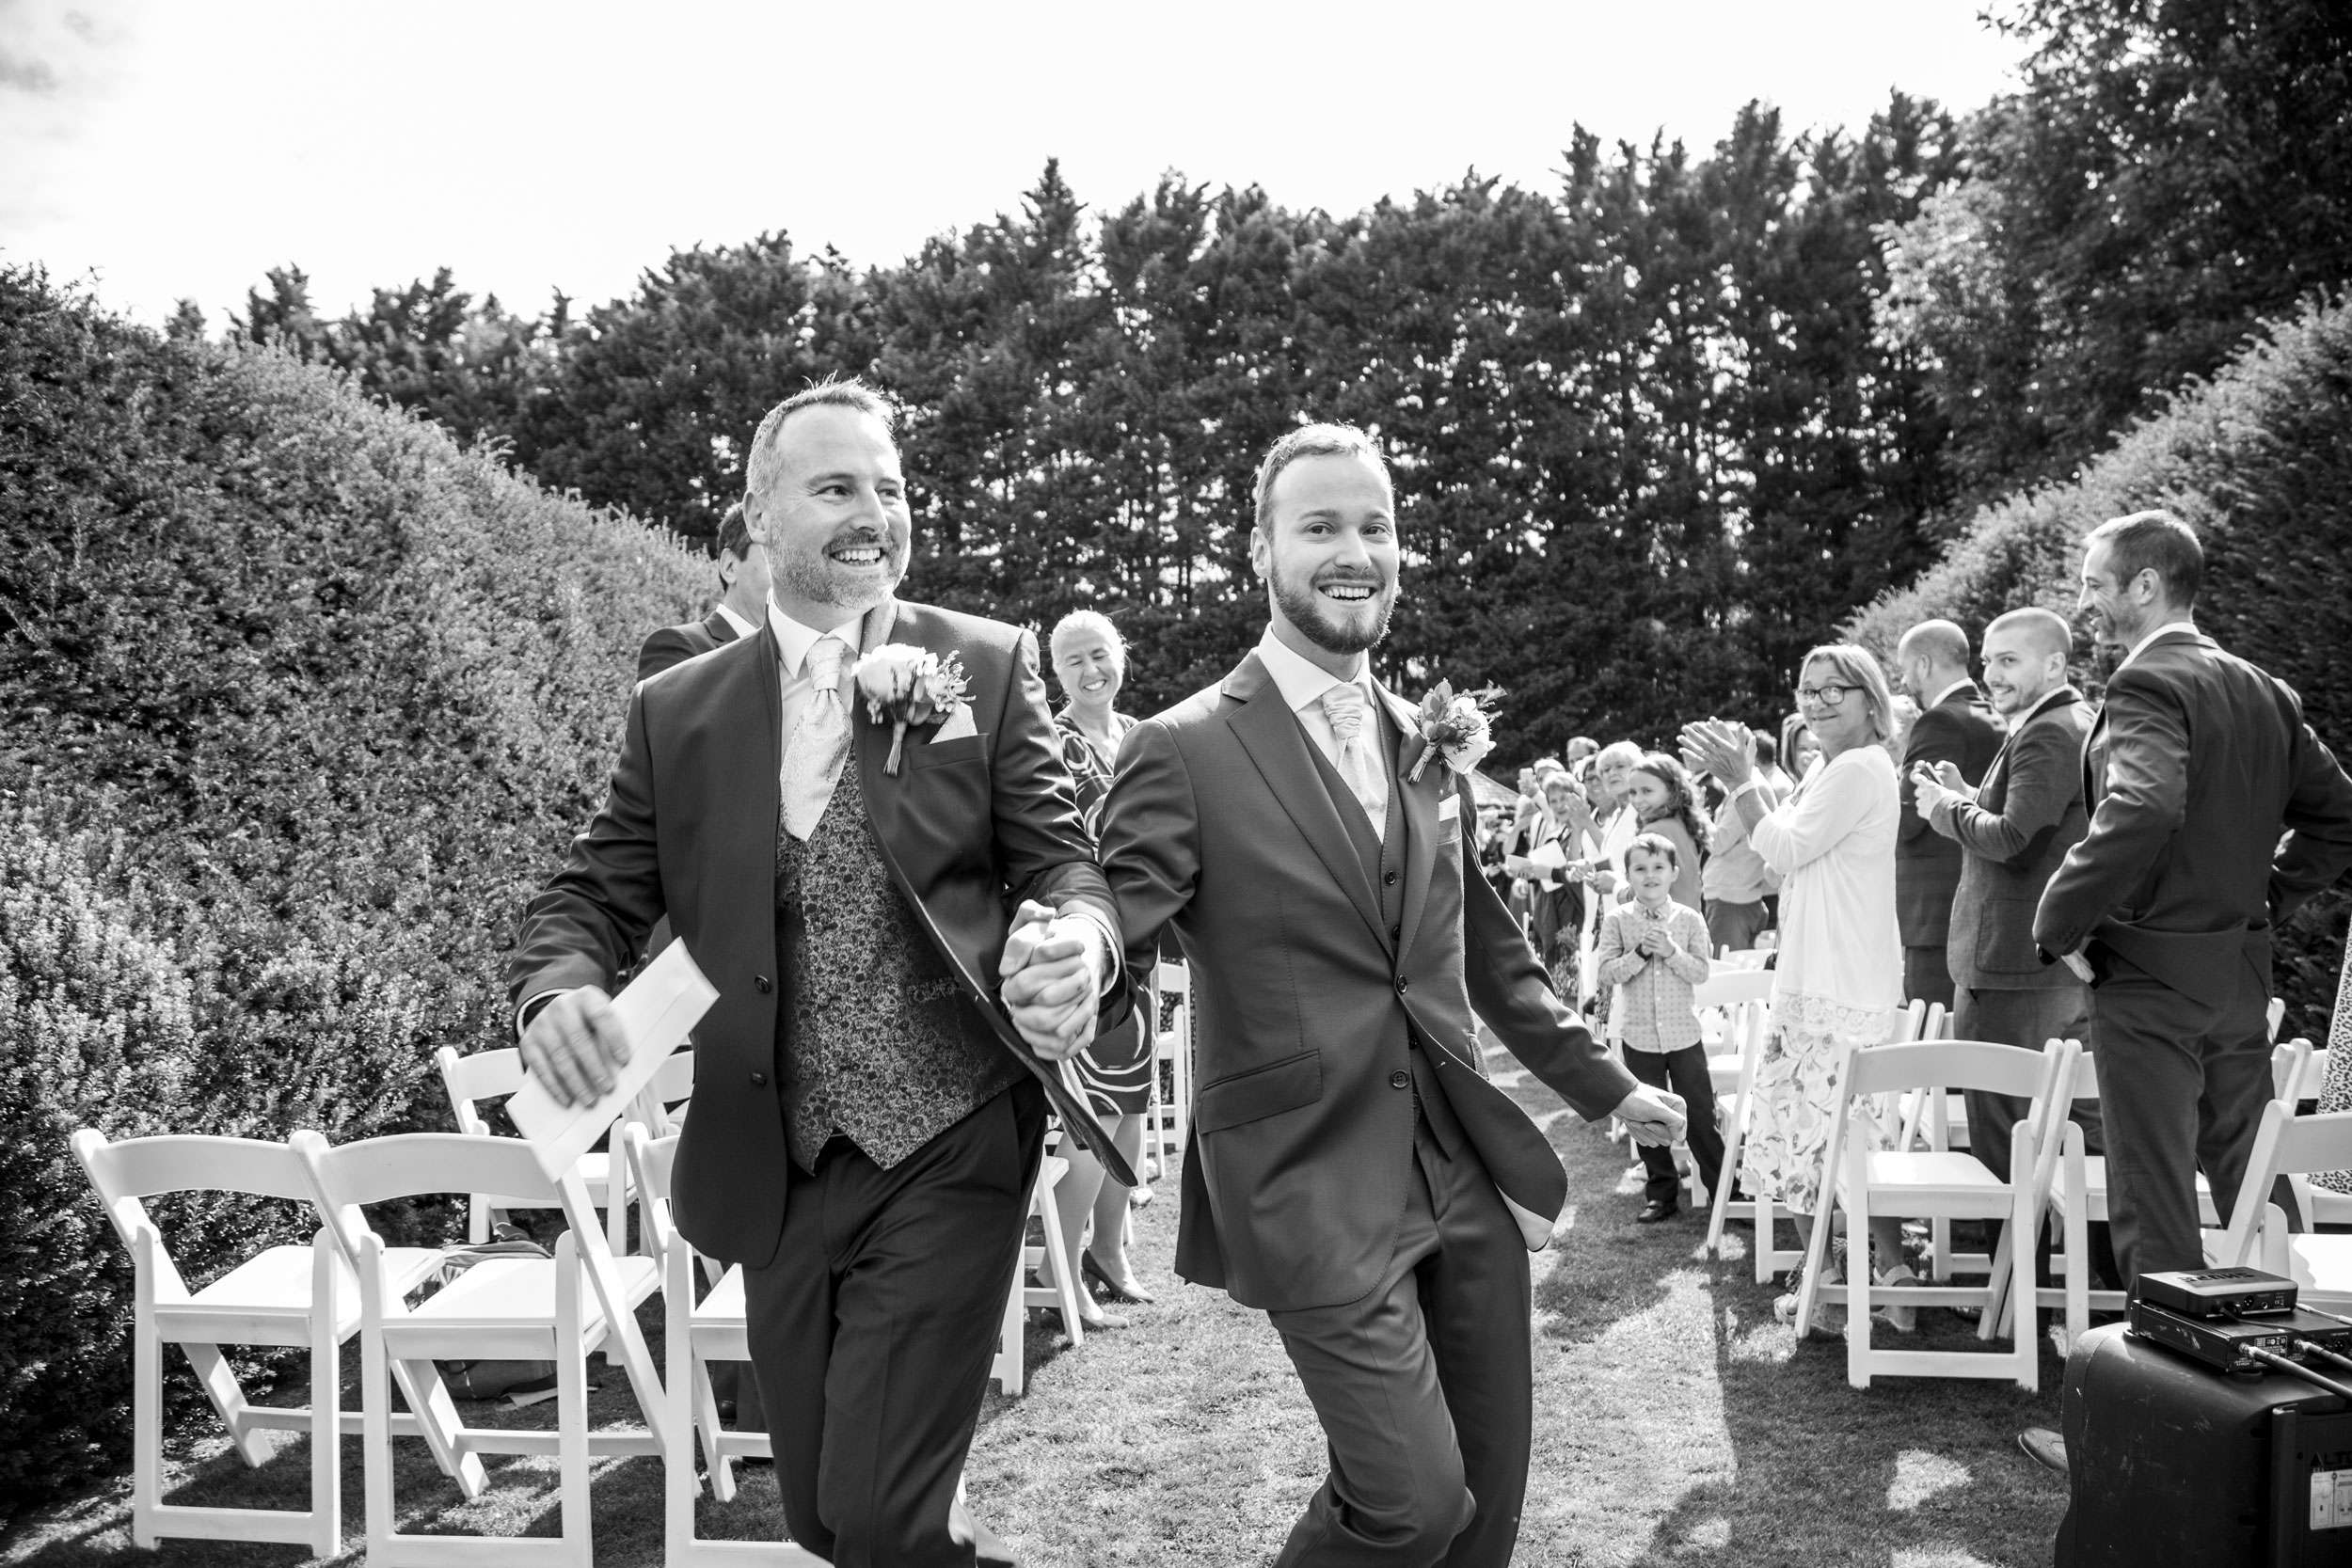 Grooms dancing down the aisle at their wedding at Hockwold Hall in Norfolk